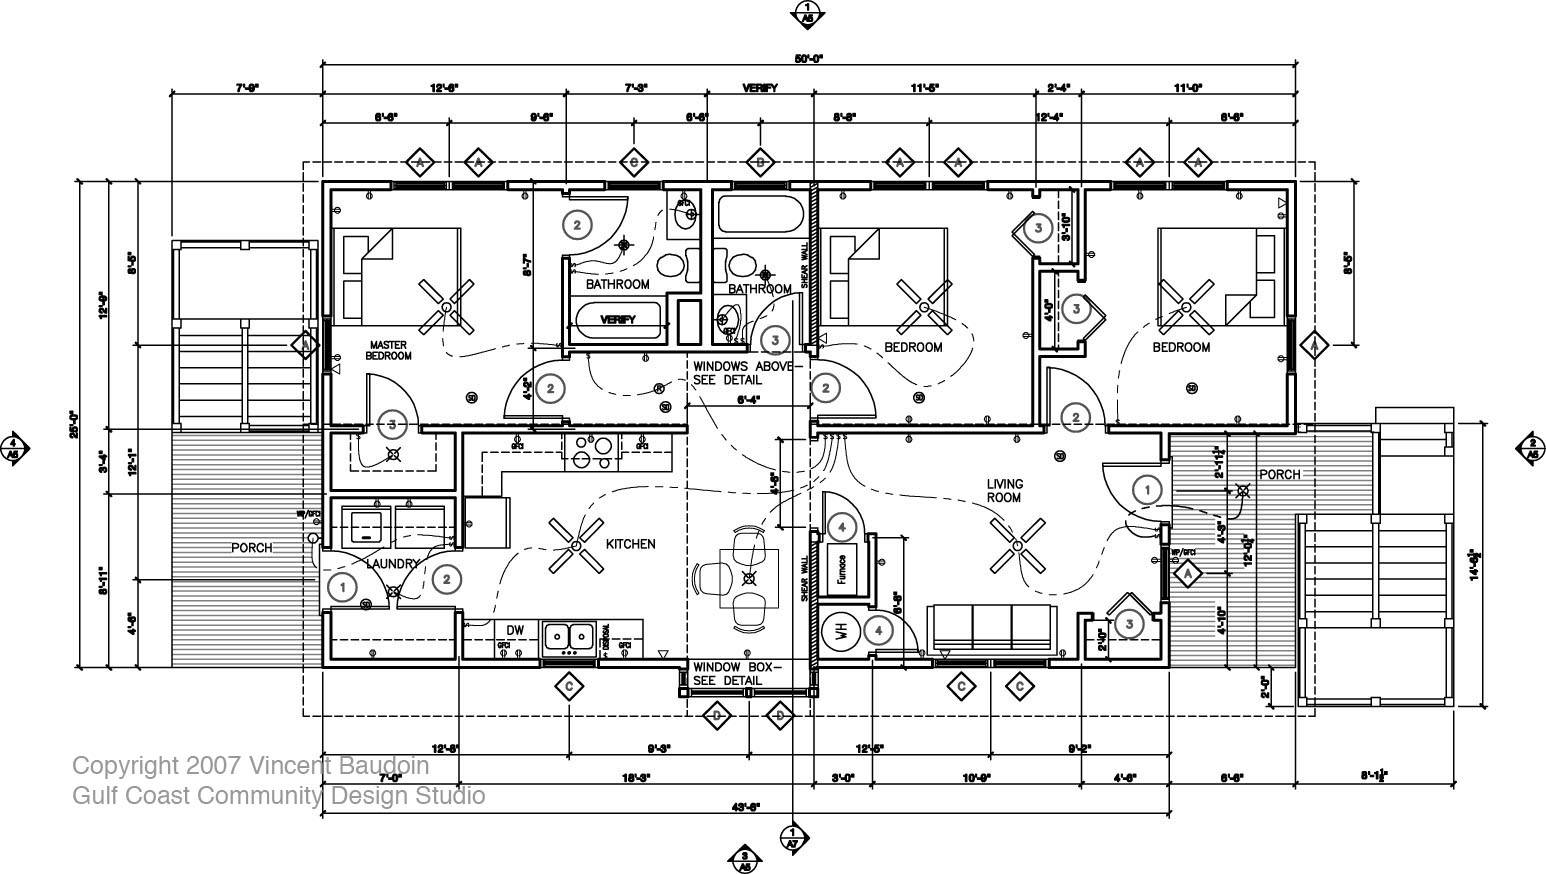 portfolio shopping mall commercial building planner_275506 how to build a restaurant booth with pictures - Beautiful House Plans